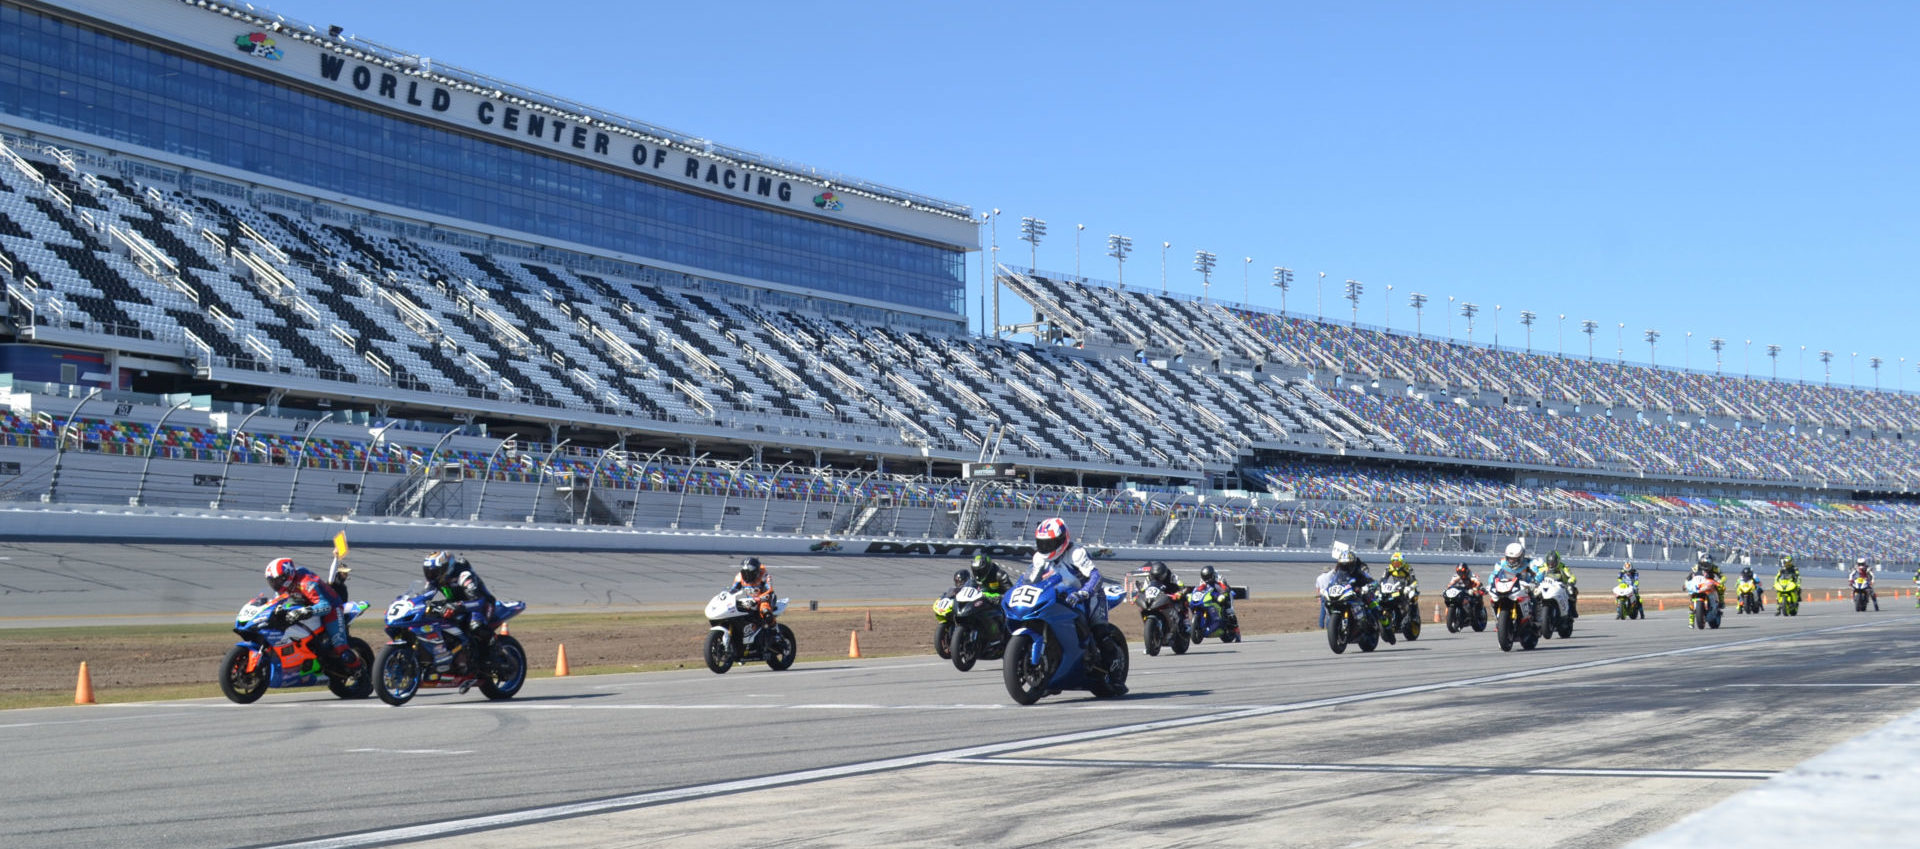 The start of the CCS Heavyweight Supersport Expert/Amateur and MotoGirlGT 600 SB race Friday afternoon at Daytona International Speedway. Photo by David Swarts.